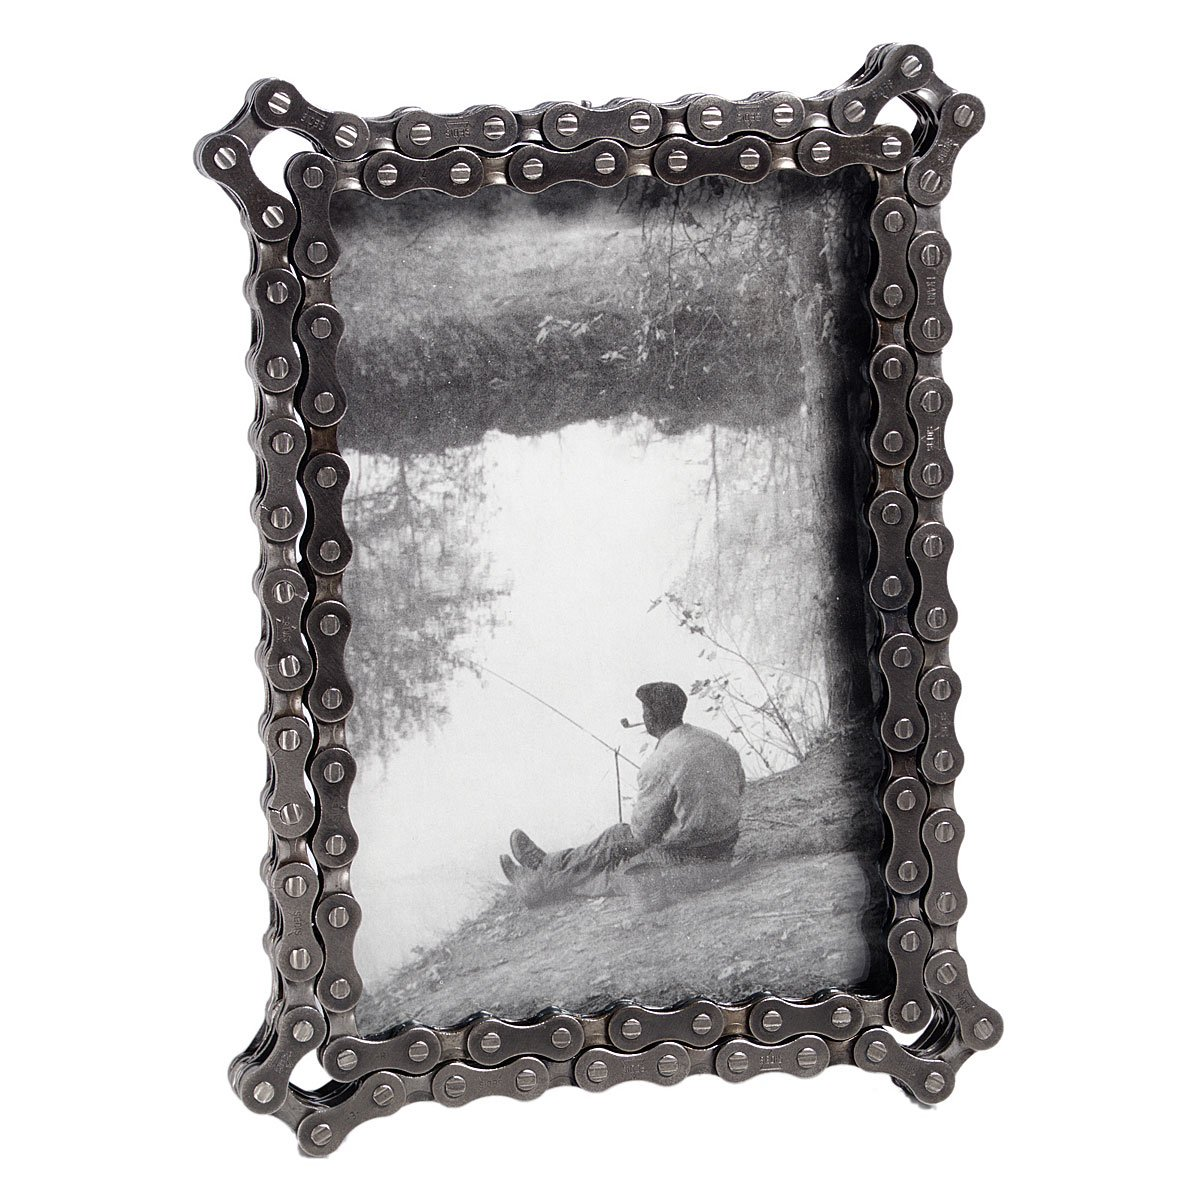 Bike Chain Frame Bicycle Chain Picture Frame Uncommongoods